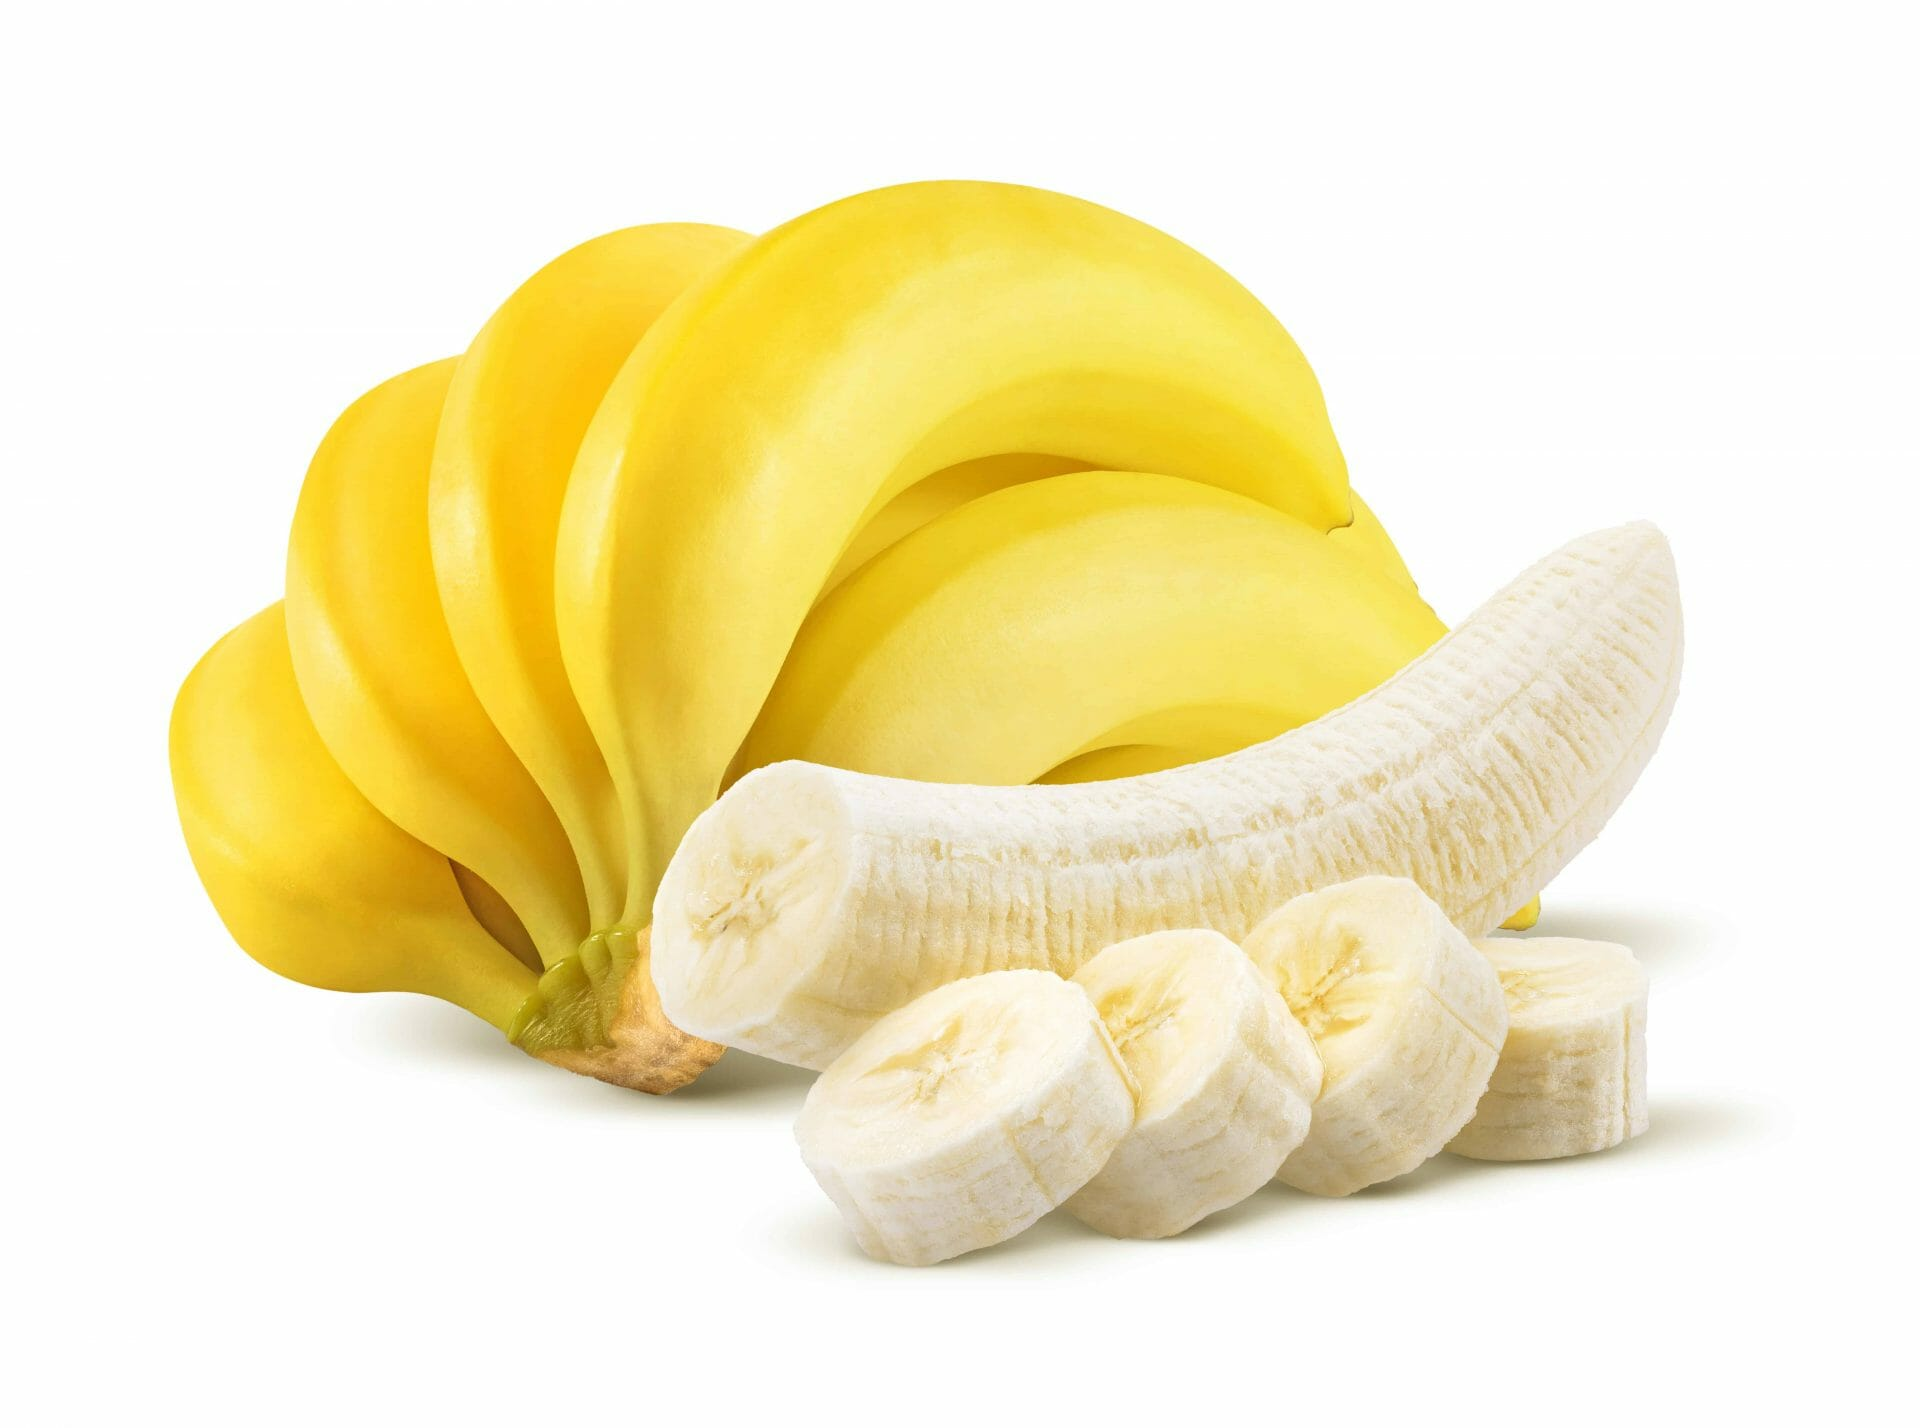 banana - food depressed people